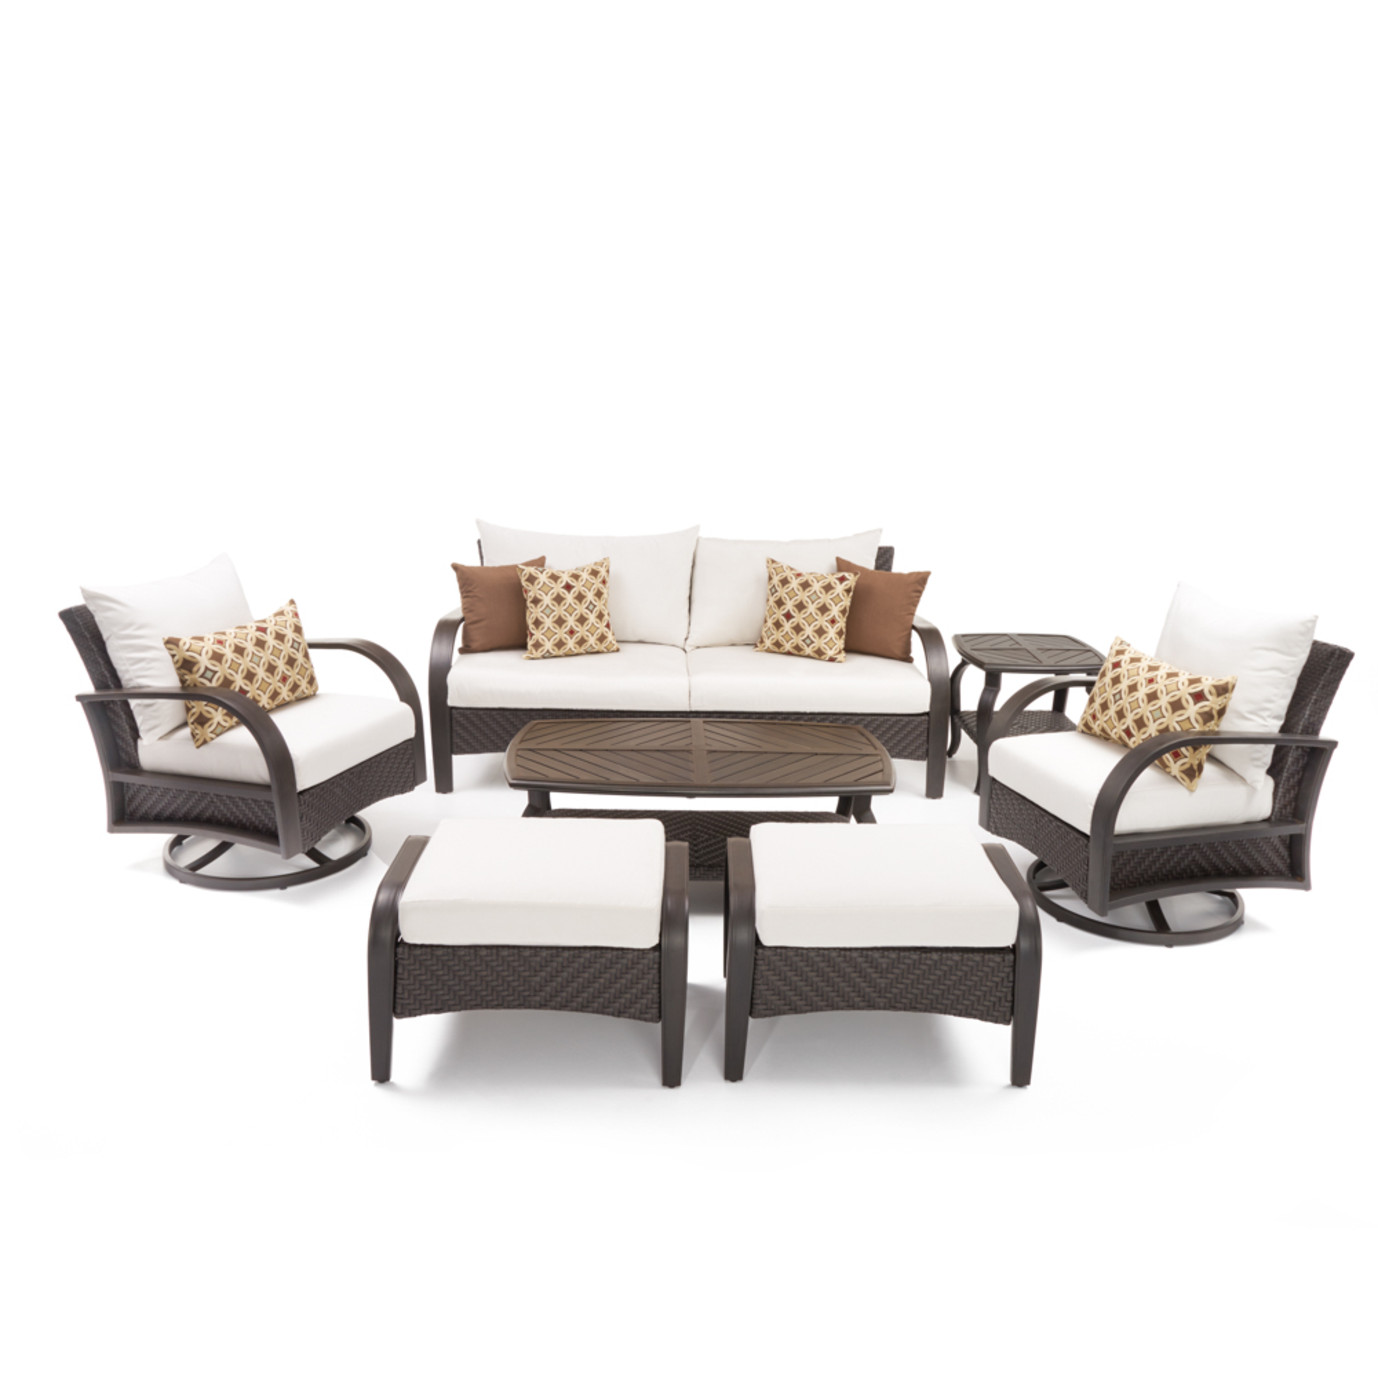 Barcelo™ 7pc Motion Club Deep Seating Set - Moroccan Cream